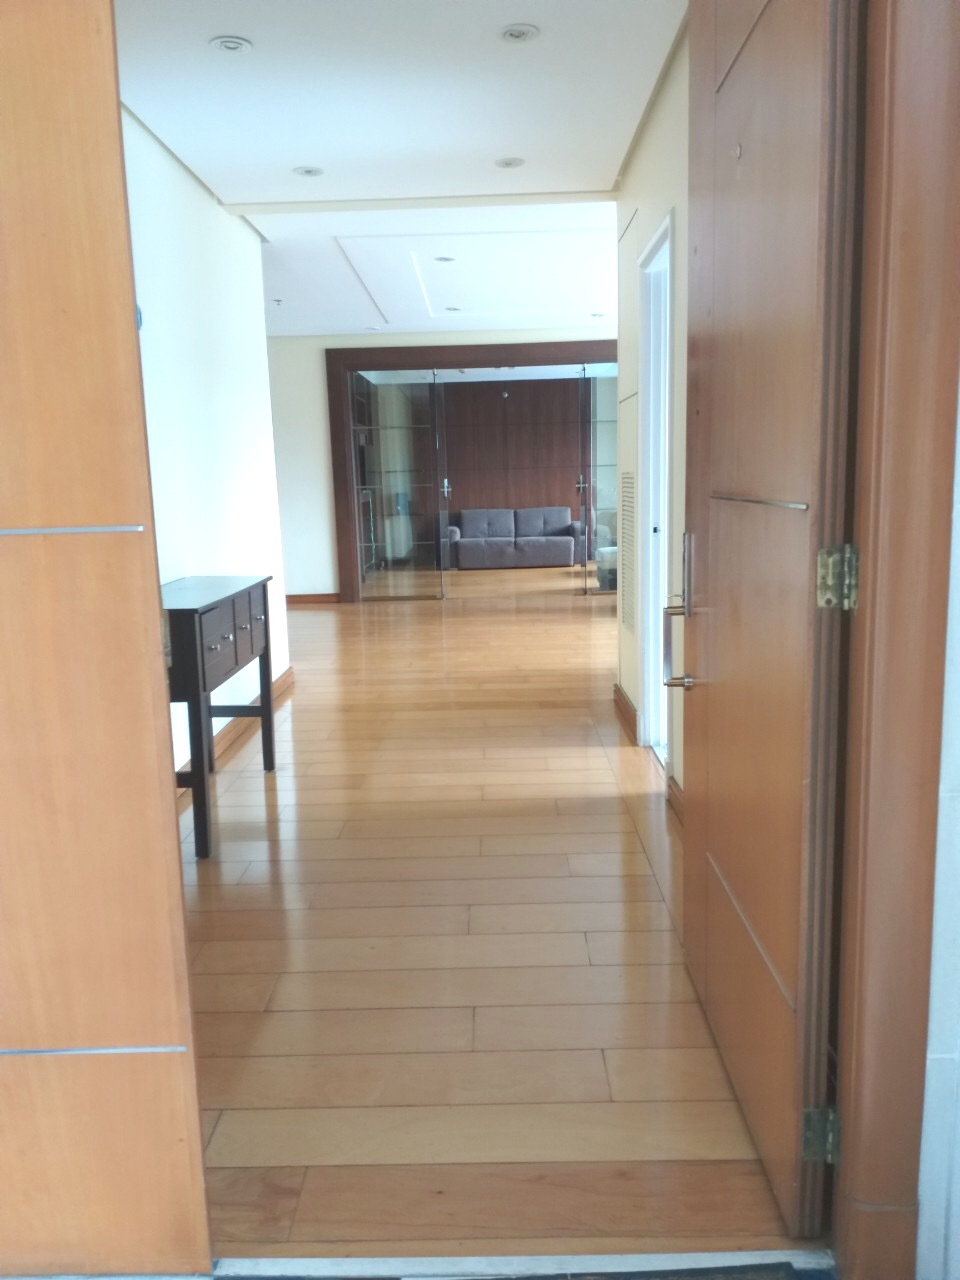 FOR LEASE BGC 3 BR at PACIFIC PLAZA NORTH TOWER LOW FLOOR FORT BONIFACIO, TAGUIG CITY